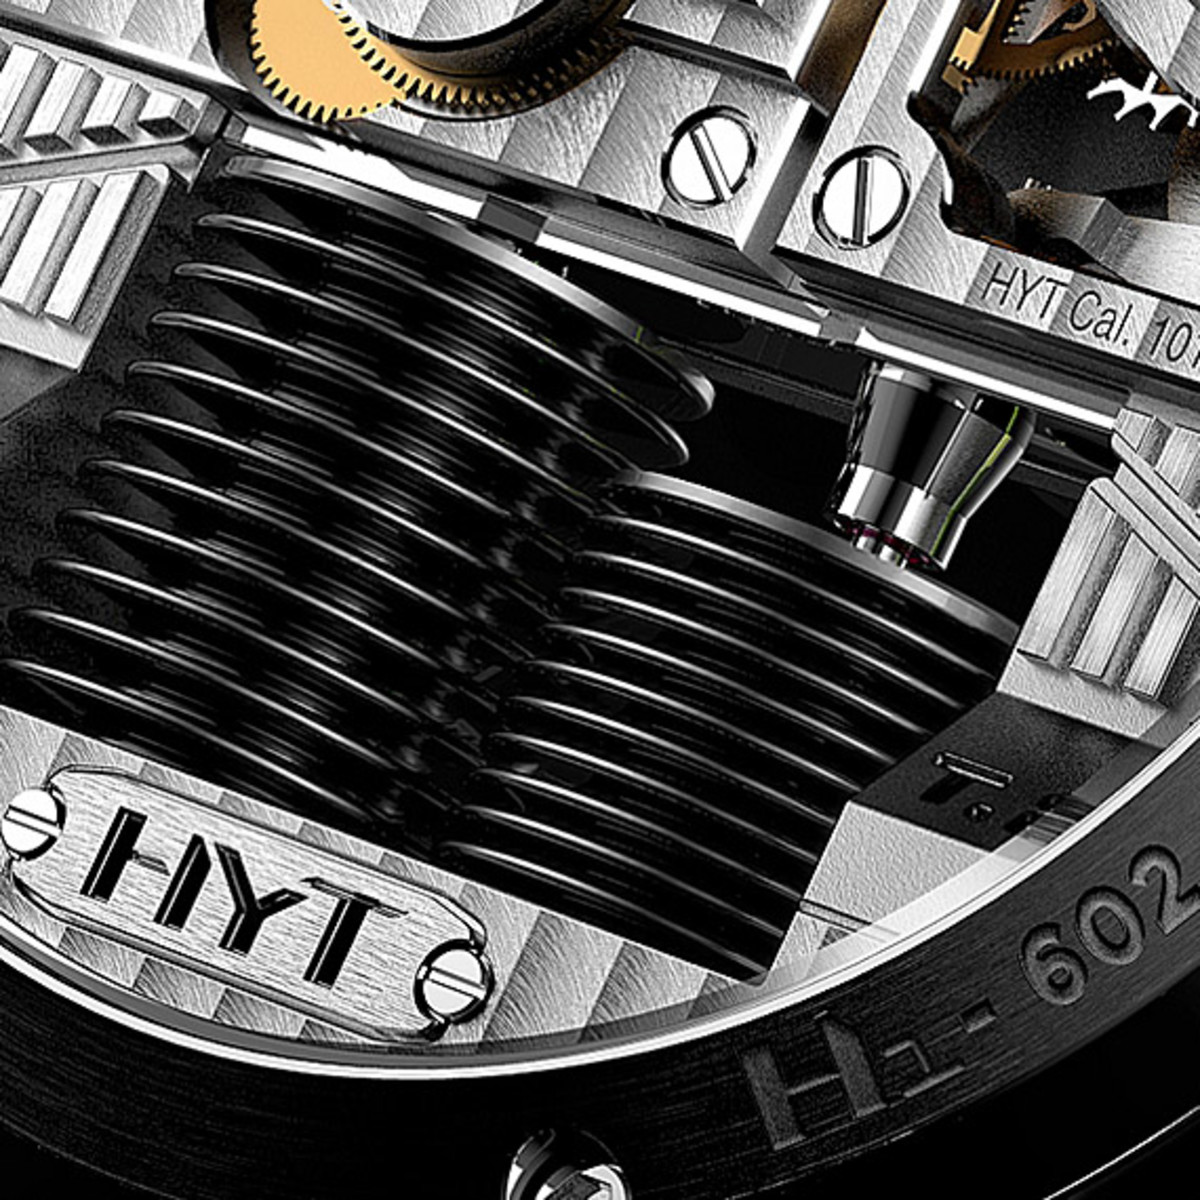 hyt-hydro-mechanical-horologists-h1-04